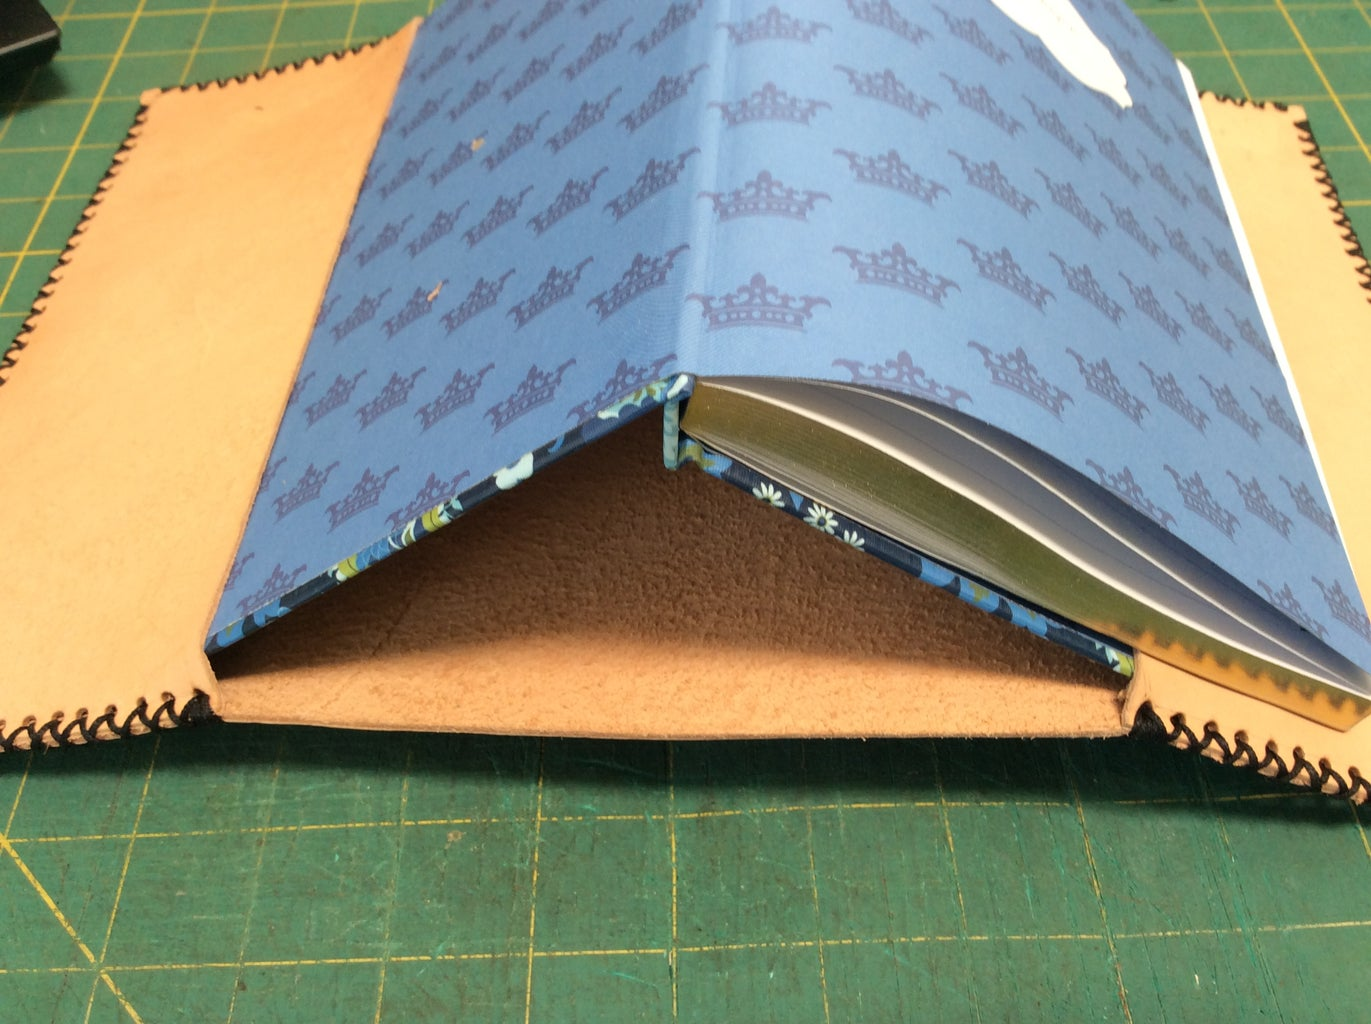 STITCHING YOUR COVER AND POCKET TOGETHER